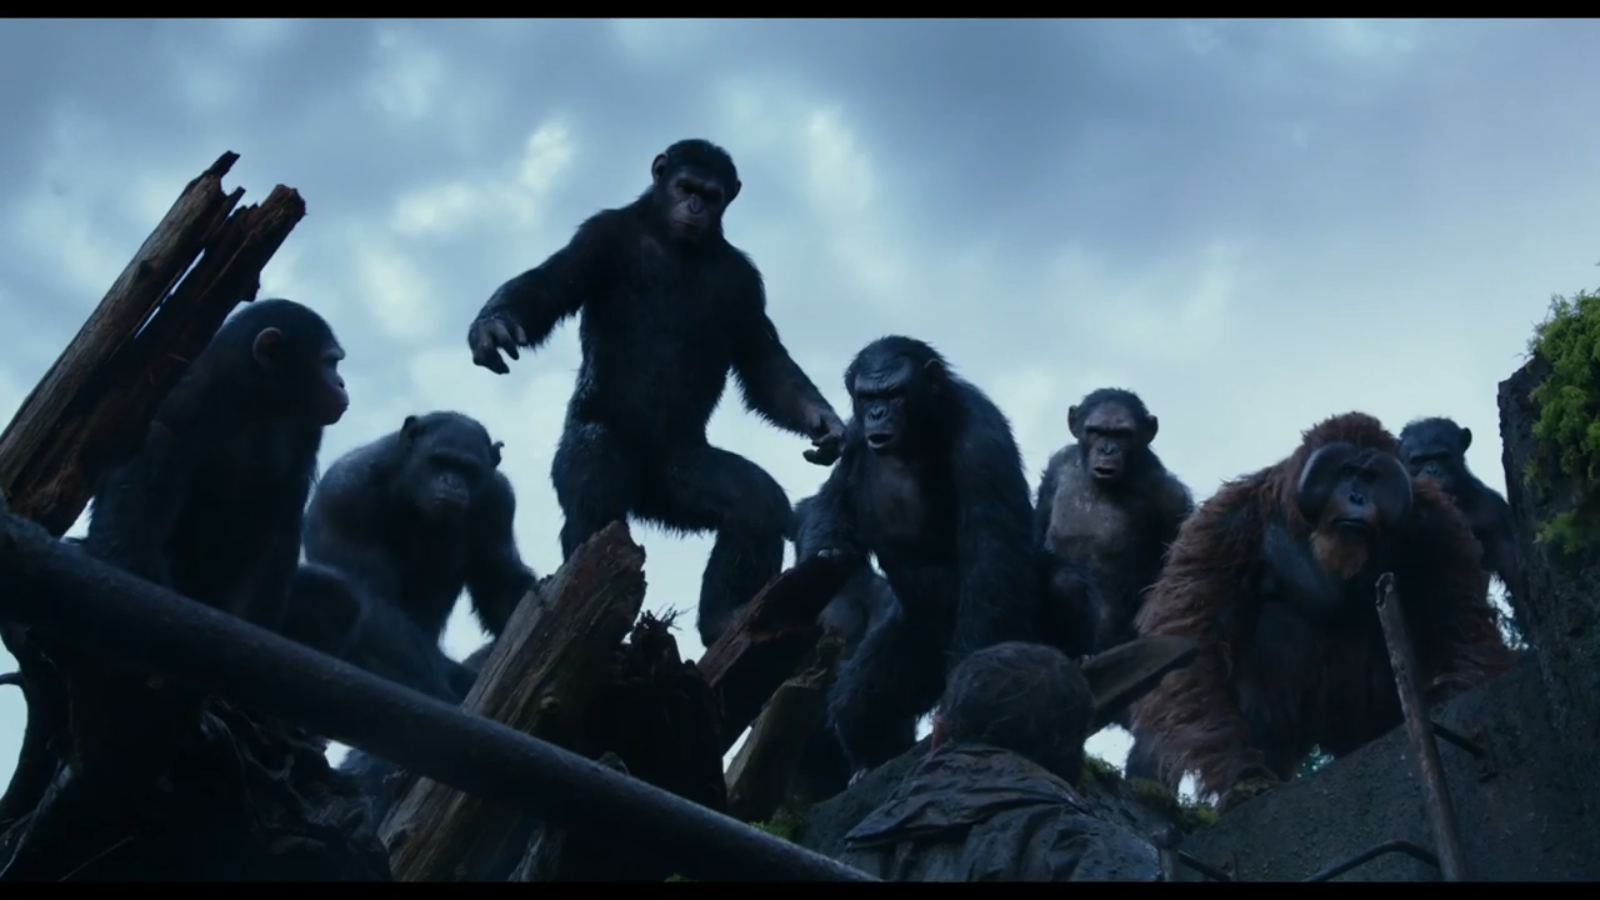 Apes on high ground